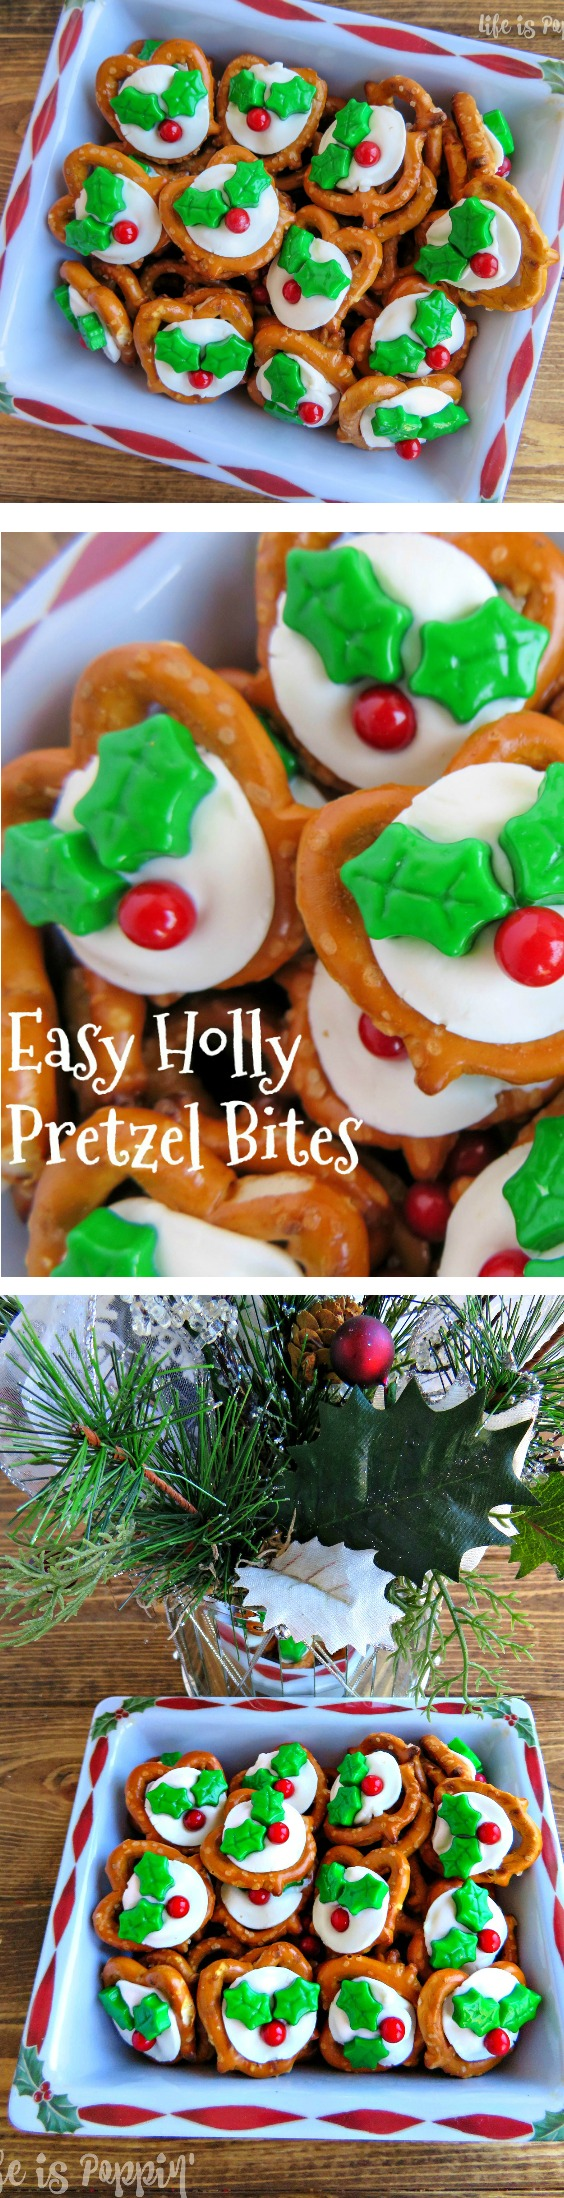 They are easy to make, cute to look at and taste amazing. These fun little treats give you the perfect balance of something sweet, salty and crunchy all in one bite. Not to mention they are super festive! You can make these for your cookie exchange, class parties, to give to co-workers or just to have sitting in the middle of the table.